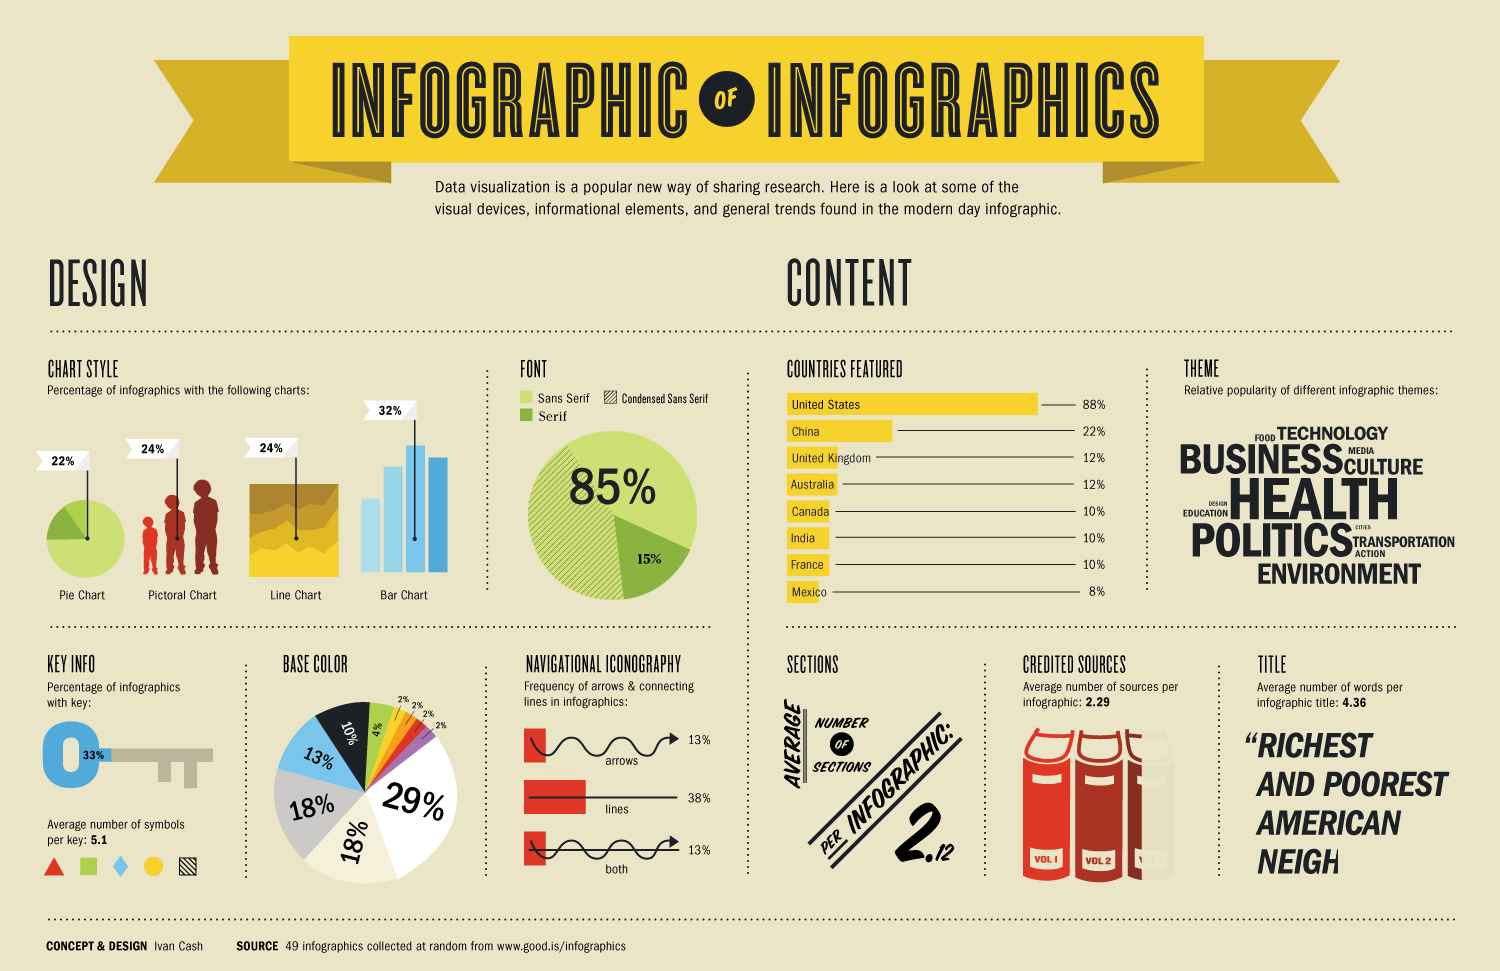 Top Five Tips for Making Interesting Infographics